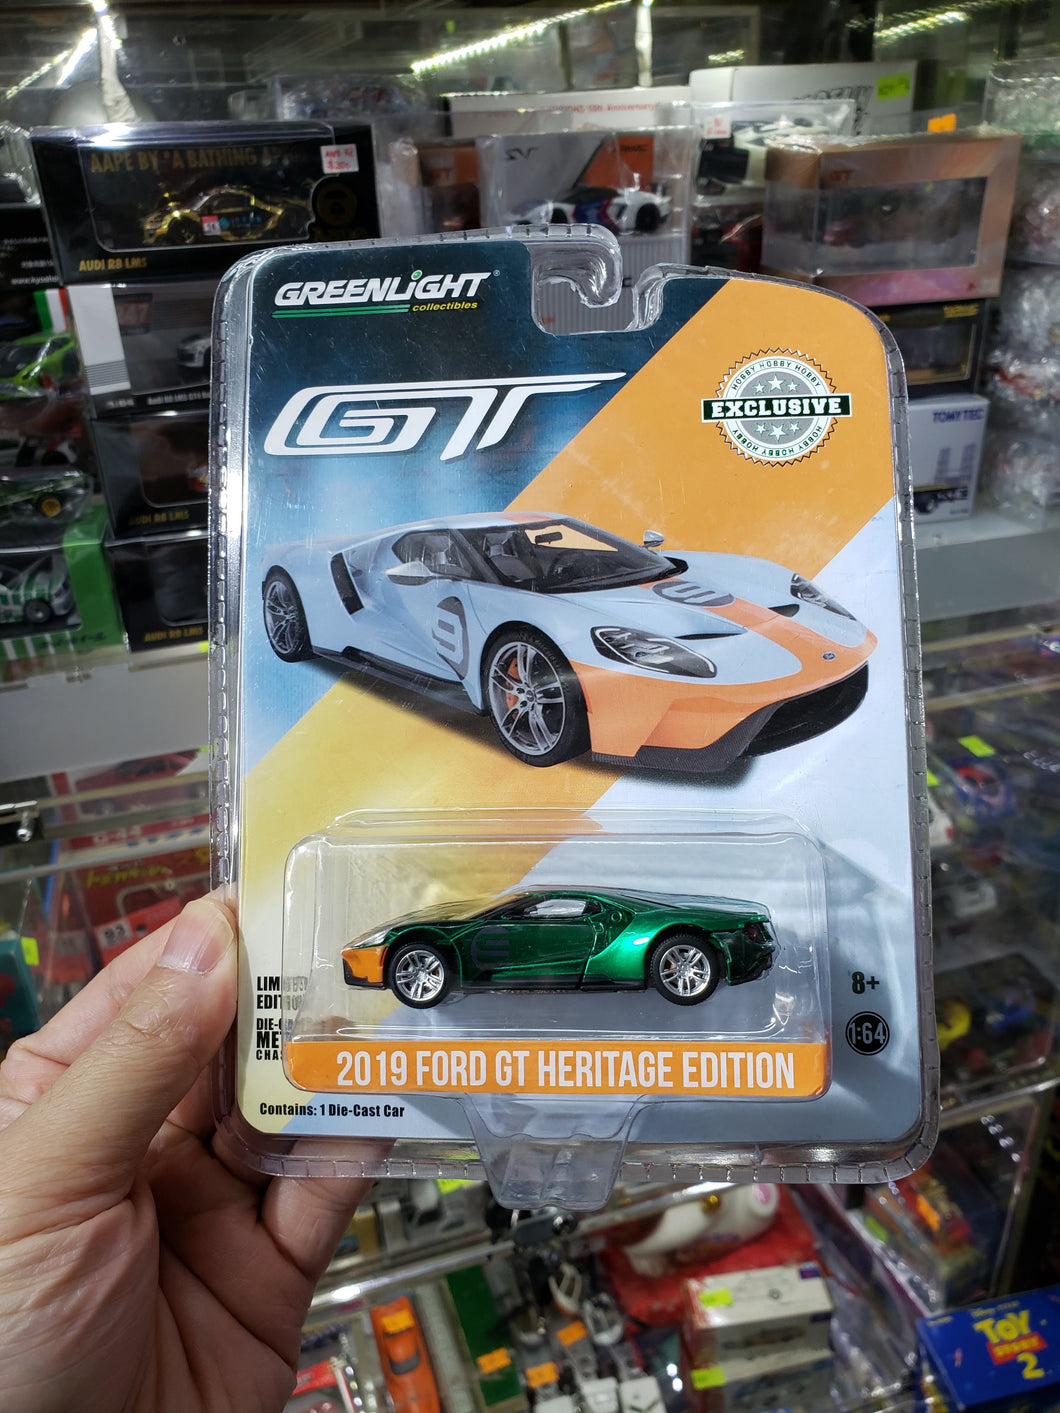 GREENLIGHT GREEN MACHINE 1/64 2019 FORD GT HERITAGE EDITION #9 GULF RACING 29909 Brand New Chase Greenie